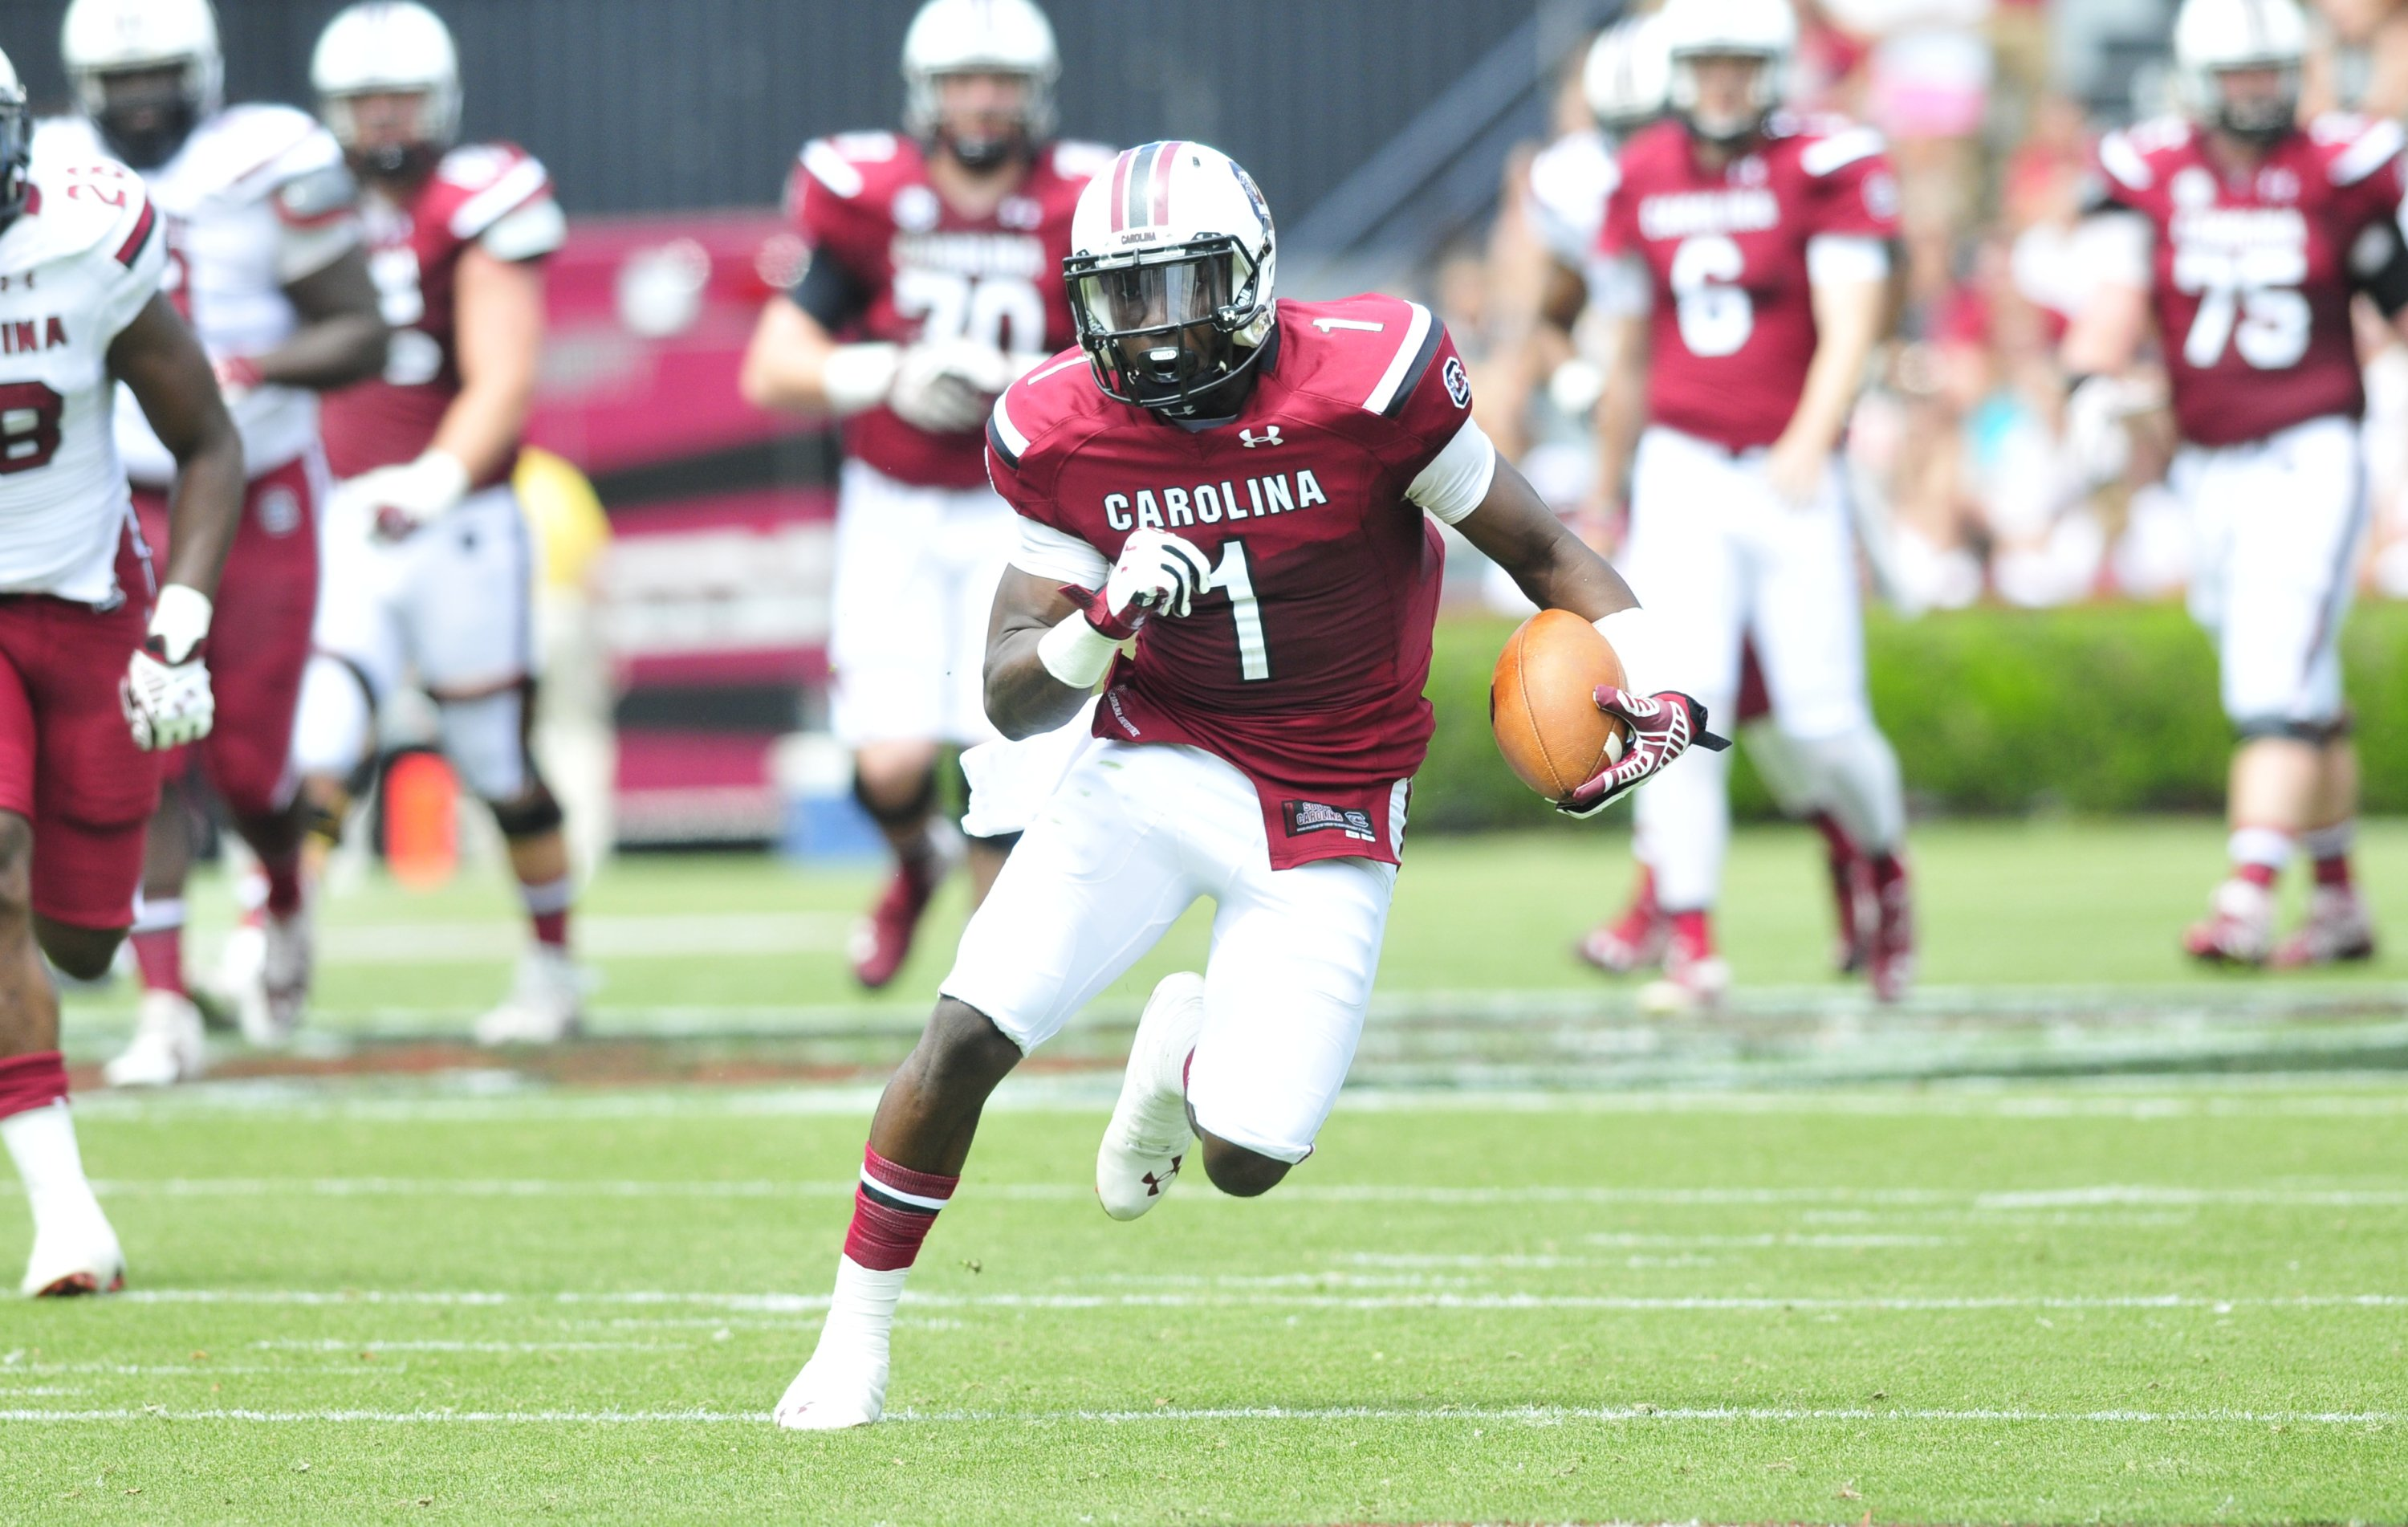 Cowboys Draft Target: South Carolina WR Deebo Samuel